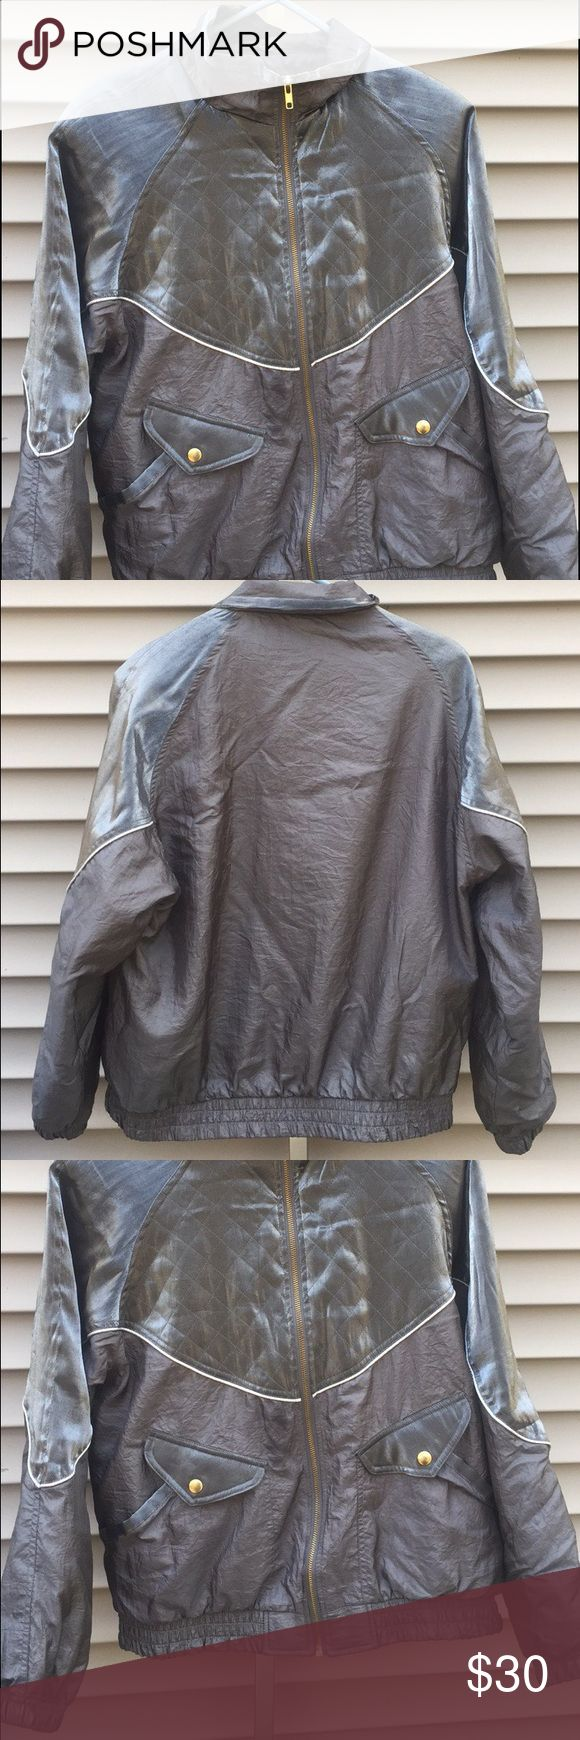 Vintage Silver Gray Windbreaker Light Jacket What a cool jacket. Different shades of gray and silver. Golden zipper. Great pockets and an elastic waist. Tagged M. Small, faint barely noticeable oil type stain on jacket near bottom of zipper.   #medium #windbreaker #windbreakers #discount #cool #fashion #cheap #lightjacket #fashionable #bundlediscount #jacket #jackets #m #silver #gray #grey #cool #vintage #vtg #unique #sport #sporty 💥30% off all bundles💥 Jackets & Coats